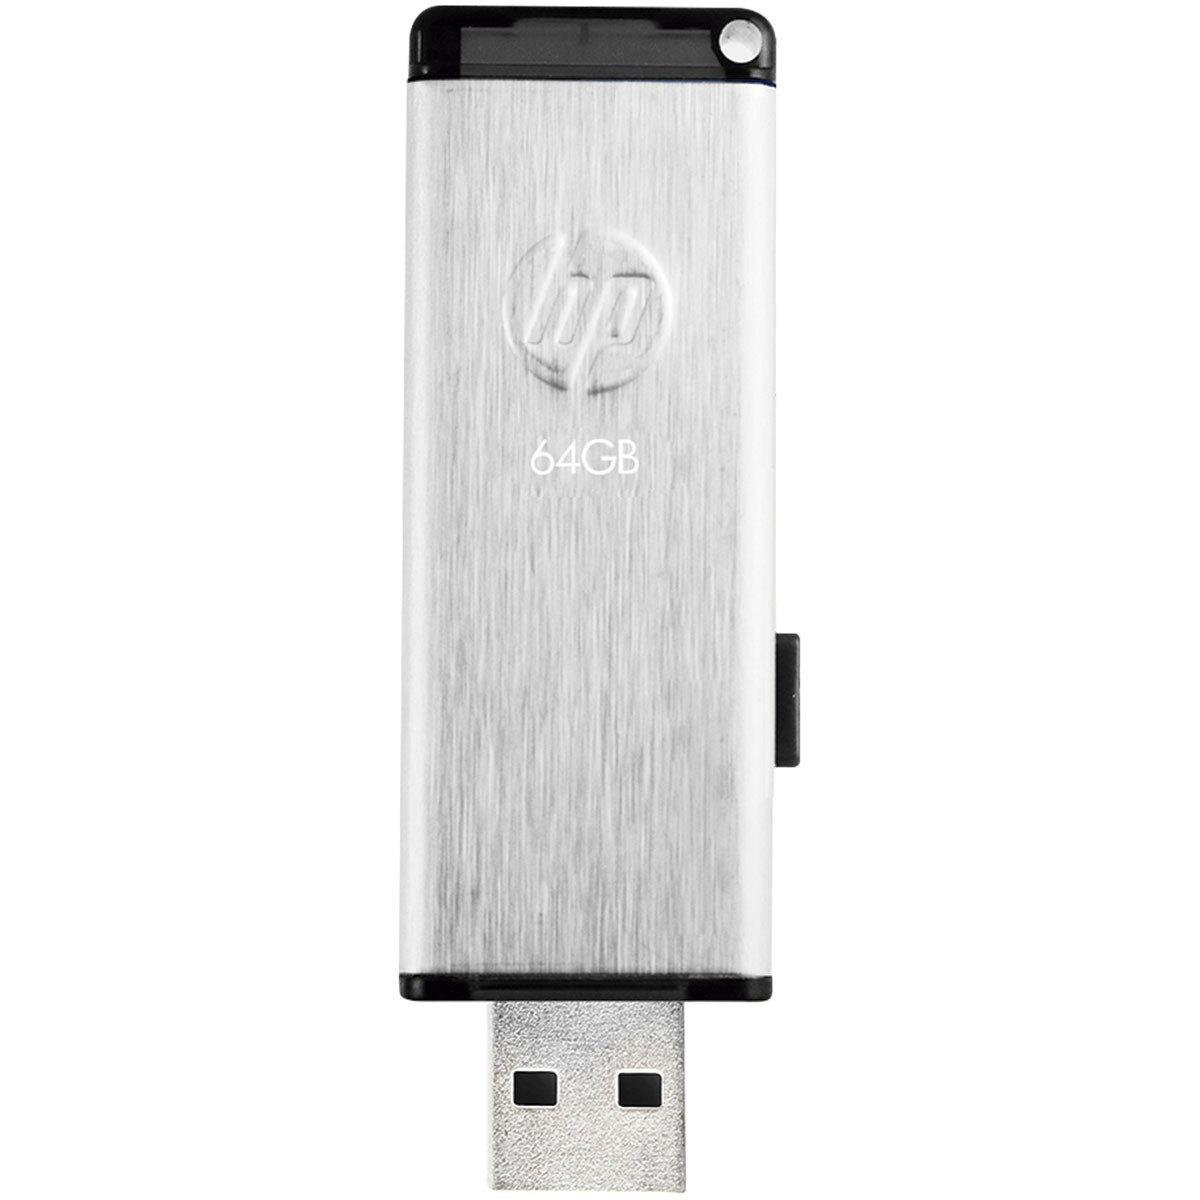 Pen Drive HP USB 2.0 V257W 64GB HPFD257W-64